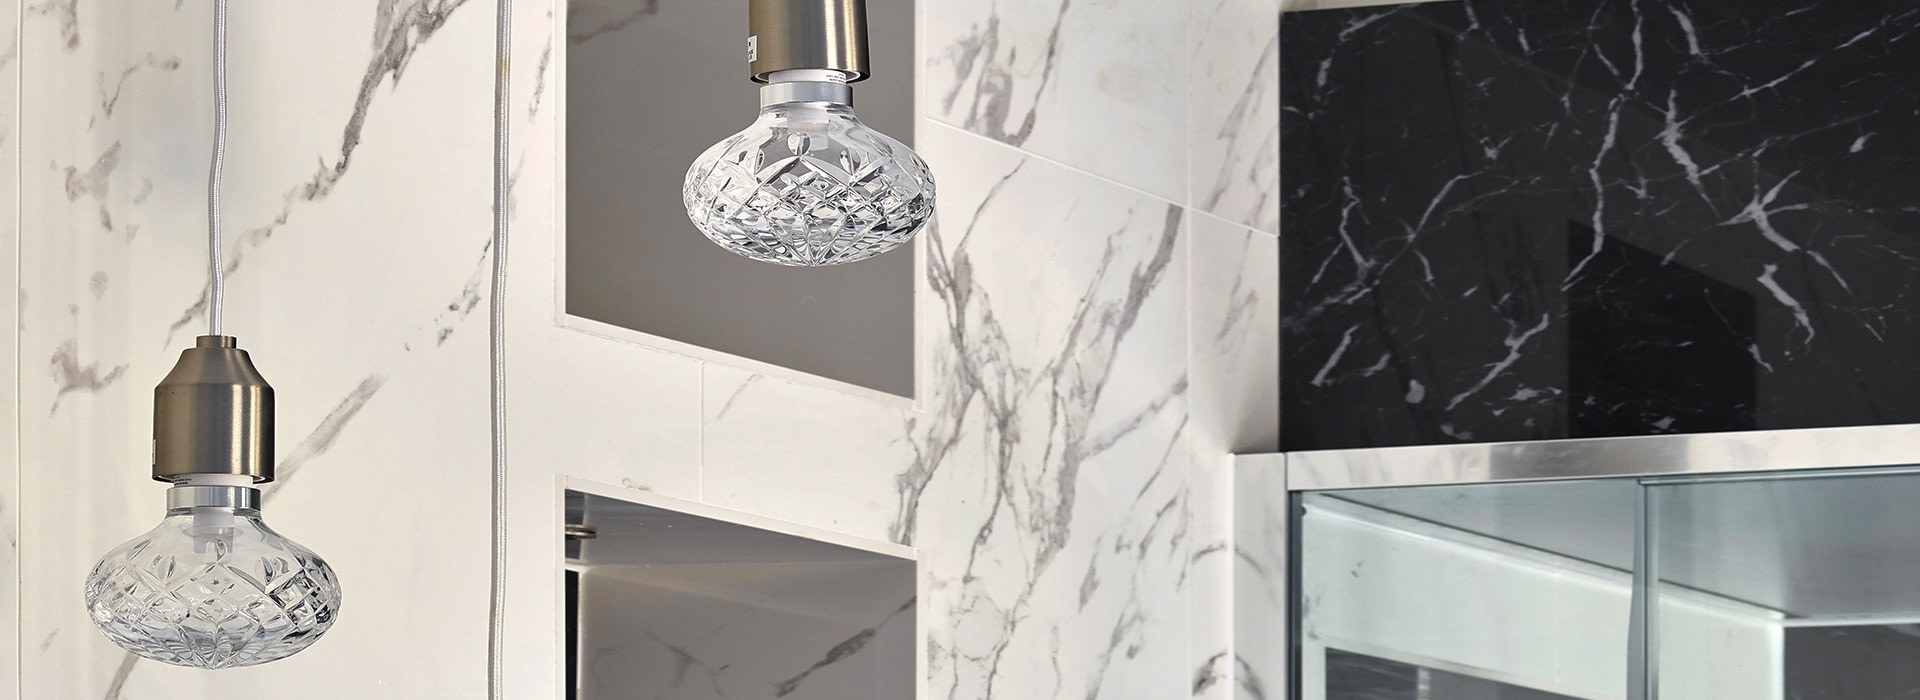 Crystal cut light bulbs with black and white marble tiles